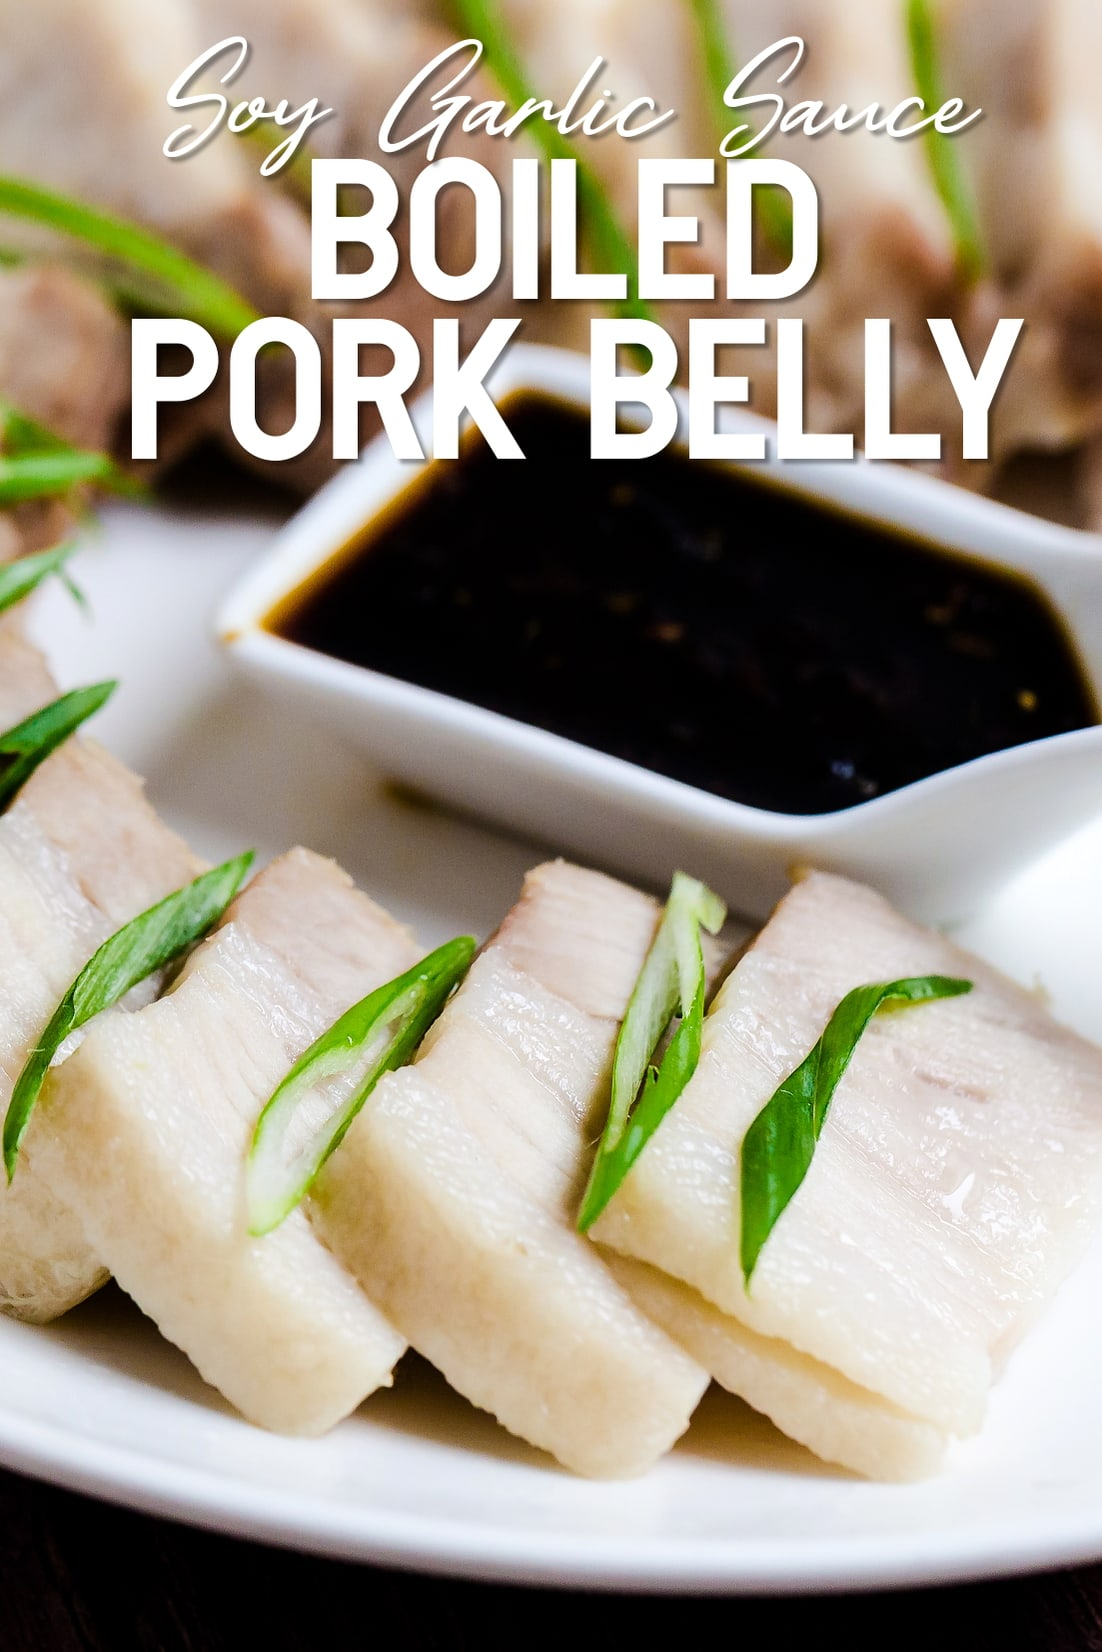 Boiled Pork Belly with Soy Garlic Sauce served on a white plate